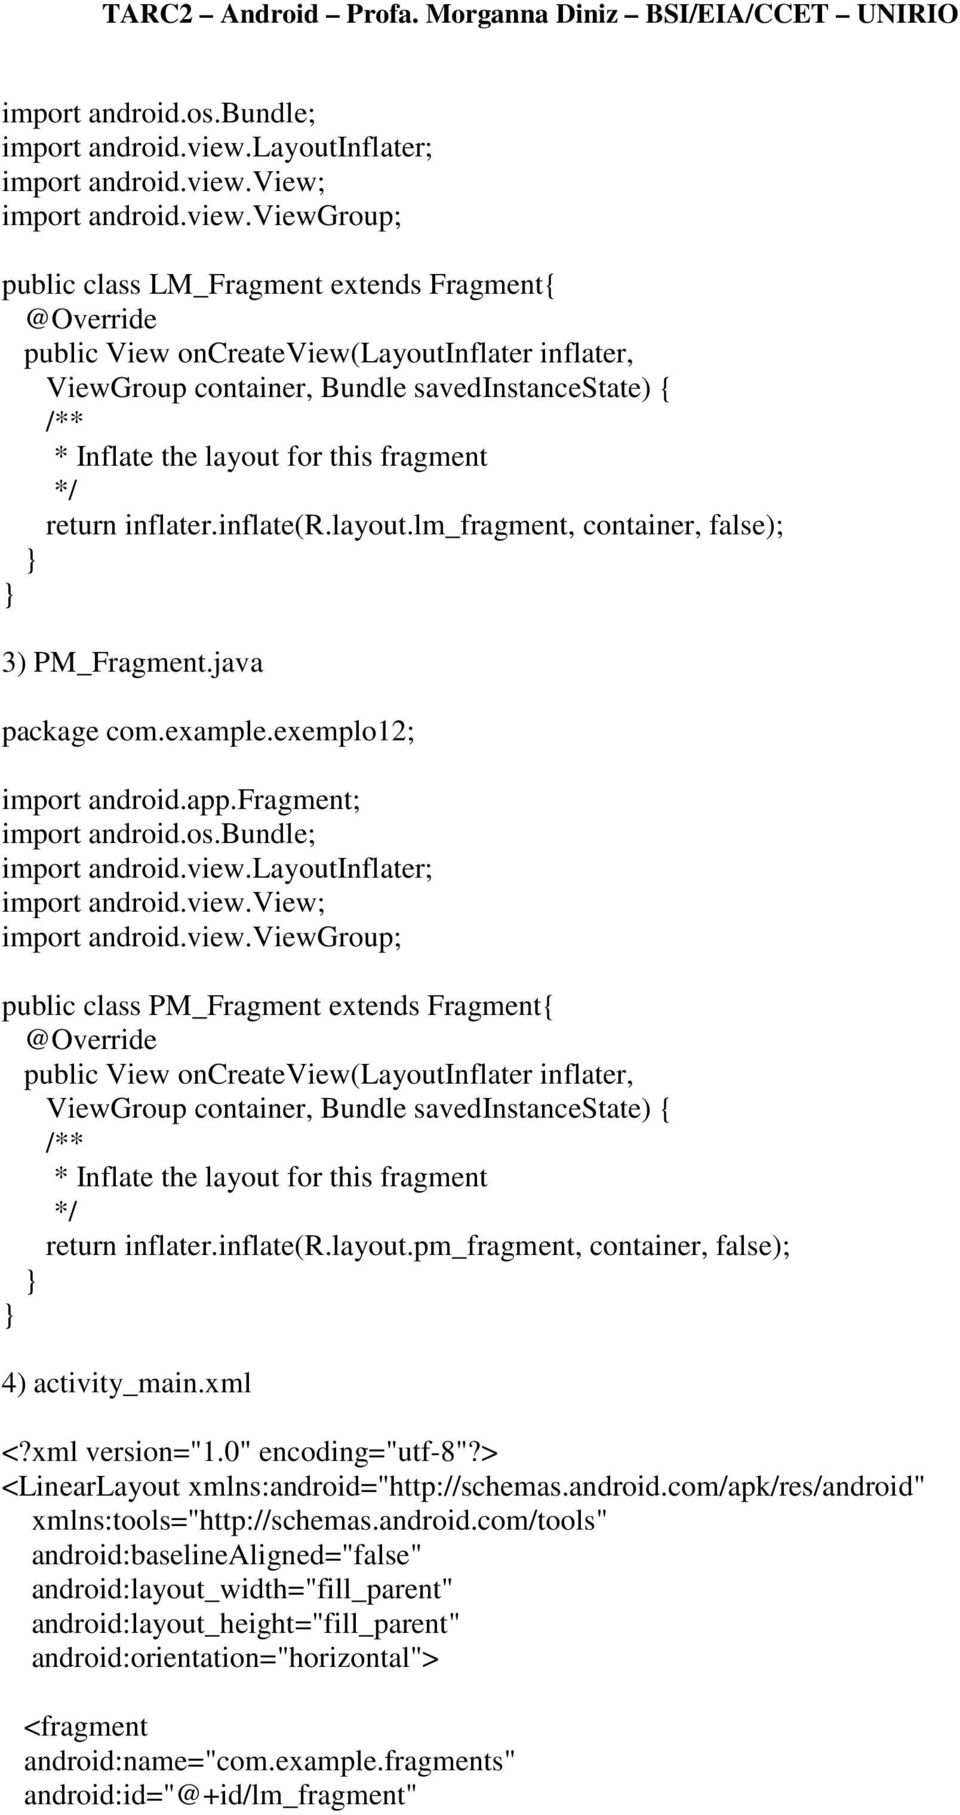 fragment; public class PM_Fragment extends Fragment{ public View oncreateview(layoutinflater inflater, ViewGroup container, Bundle savedinstancestate) { * Inflate the layout for this fragment return